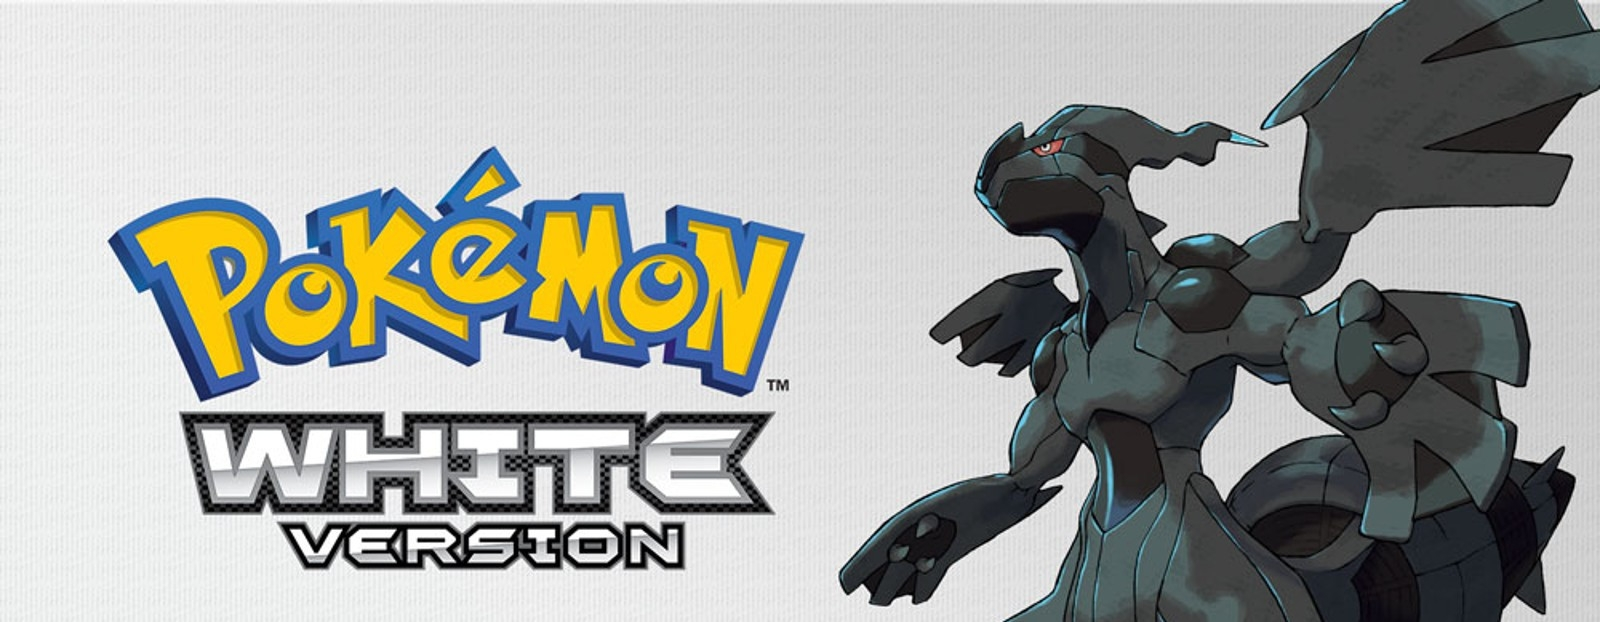 Banner Pokemon White Version